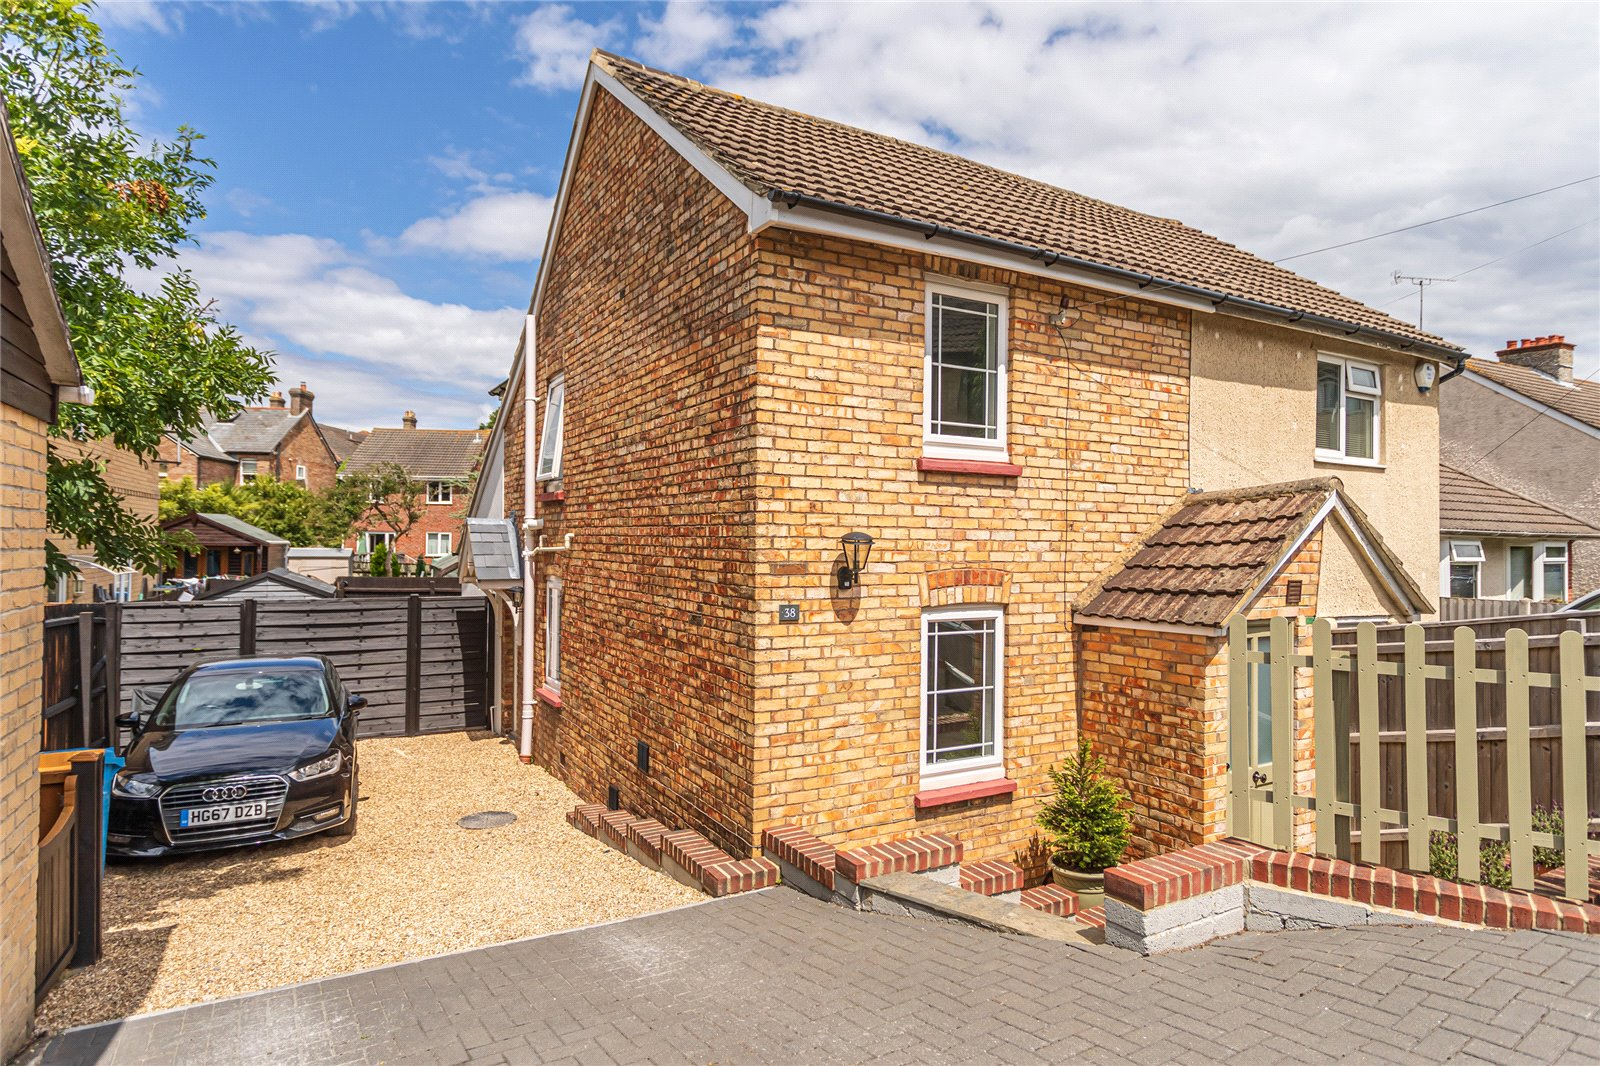 3 bed house for sale in Beaconsfield Road, Parkstone  - Property Image 1